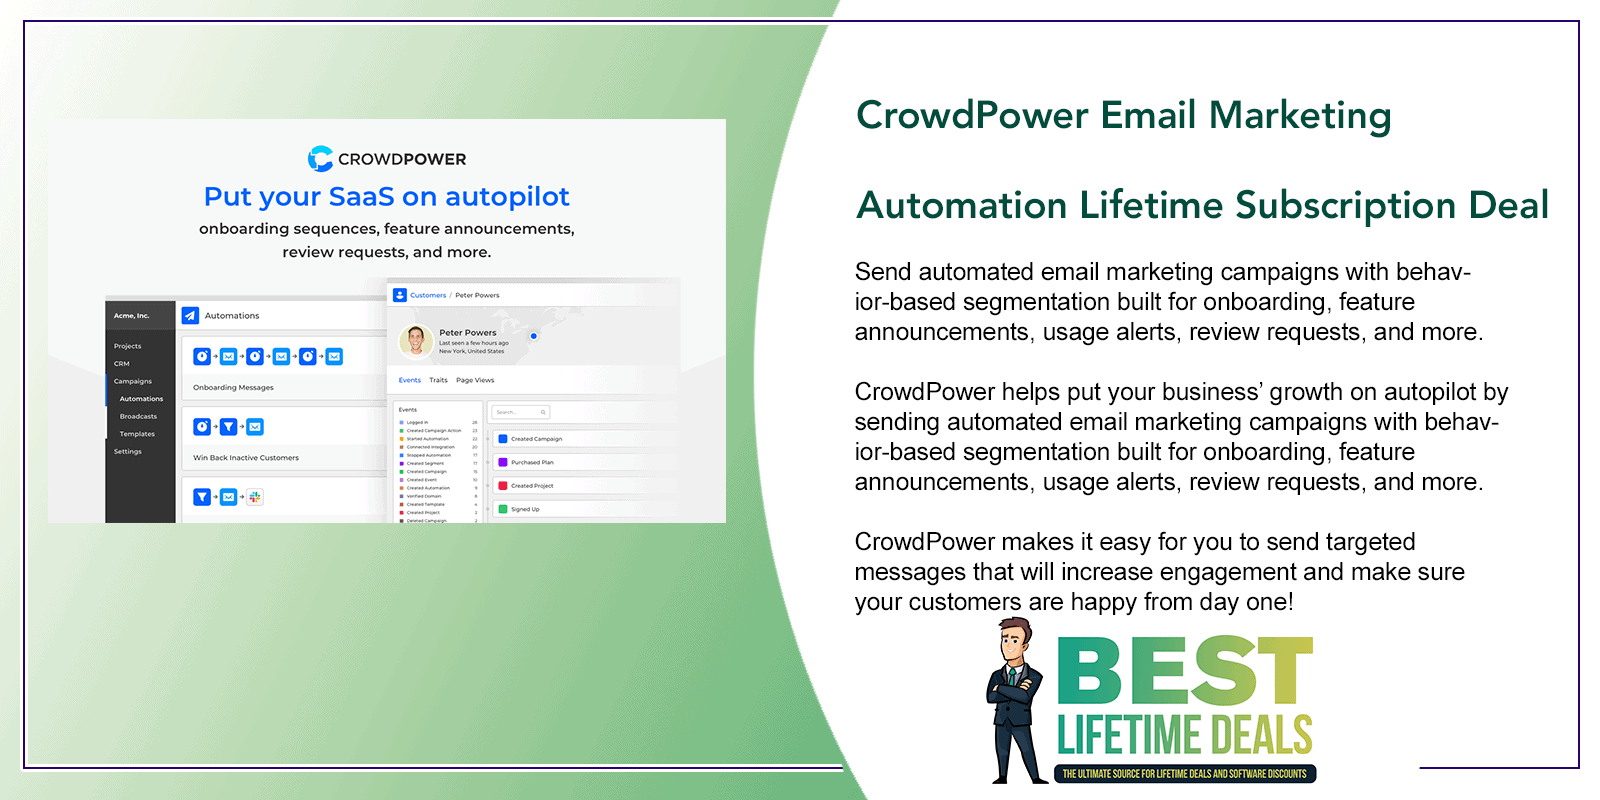 CrowdPower Email Marketing Automation Lifetime Featured Image